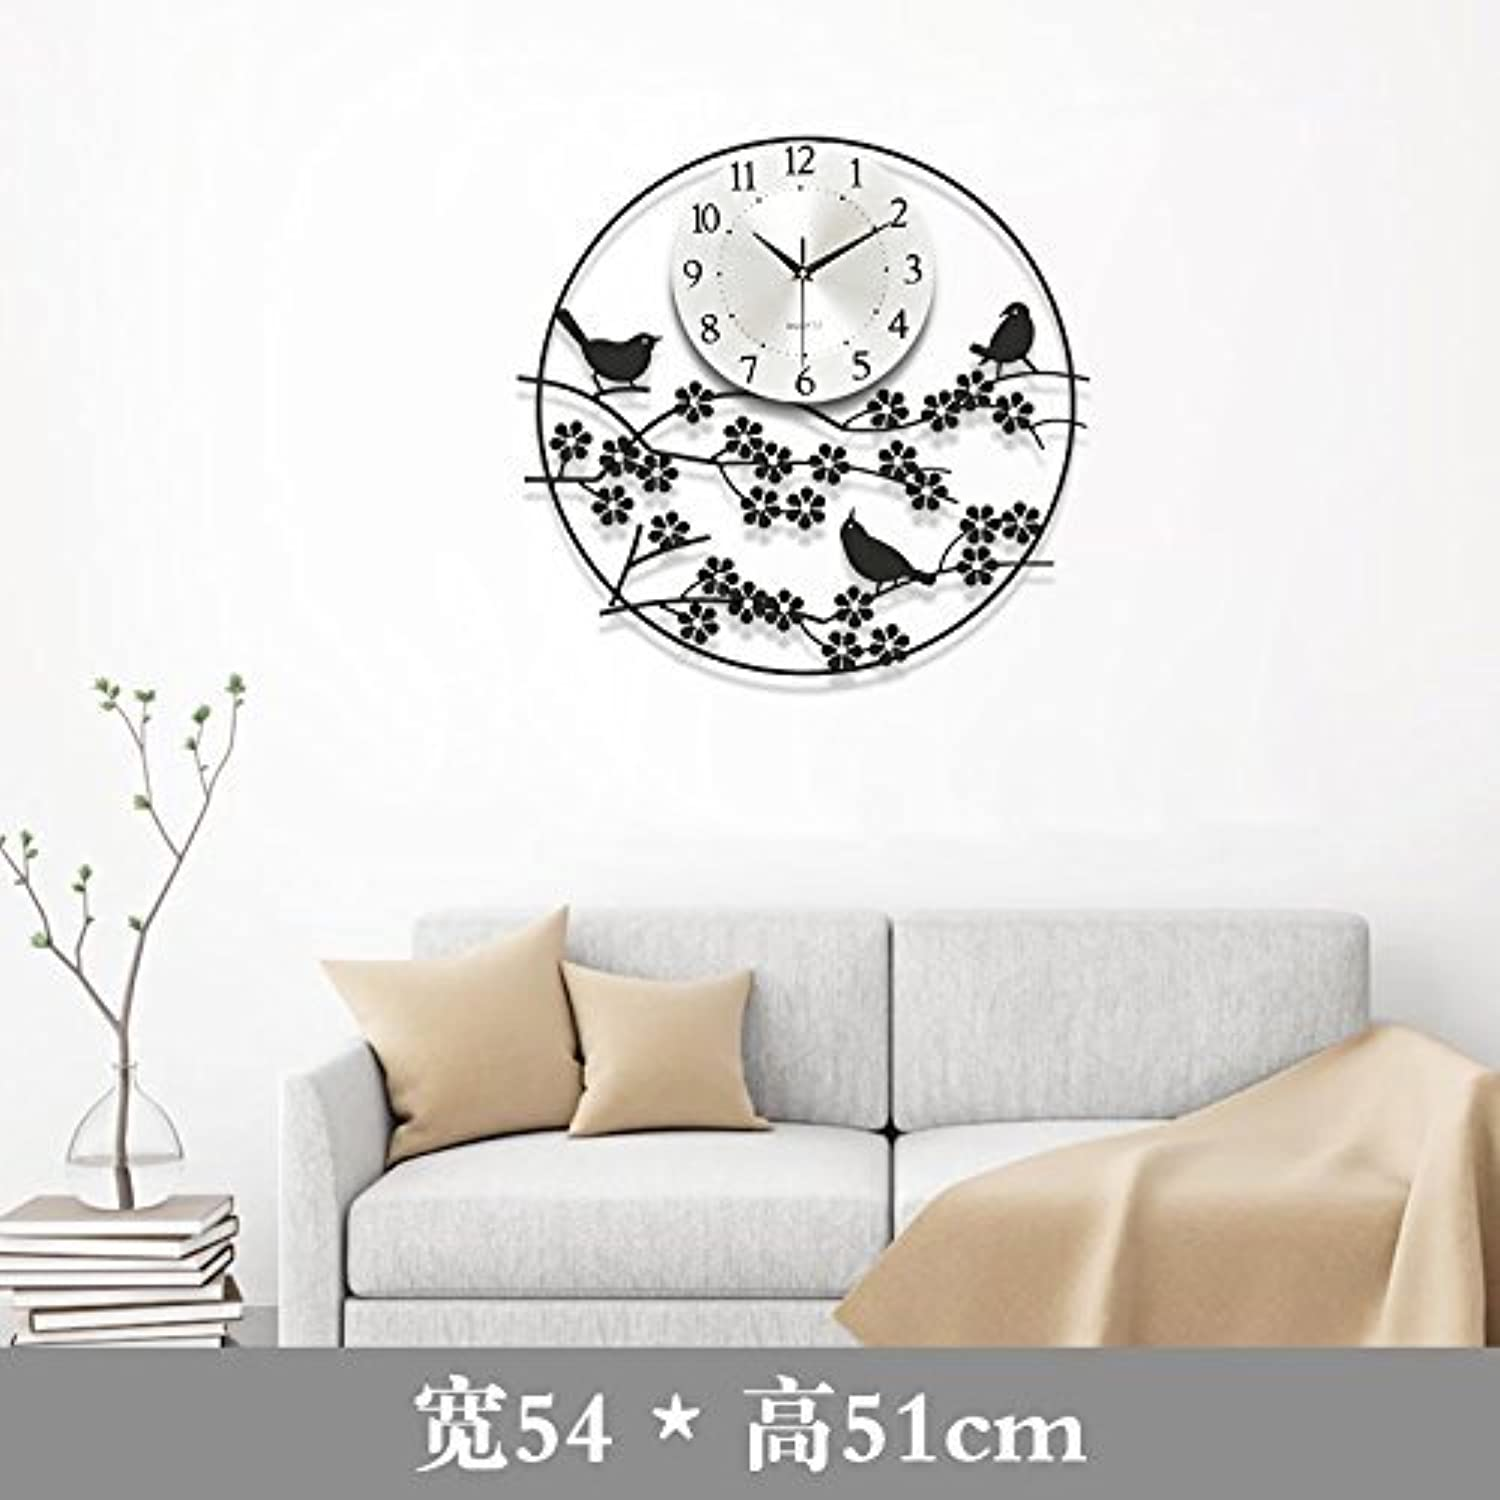 Non-Ticking Silent Modern Matt Wall Clock DIY for Living Room Bedrooms Office Kitchens Black